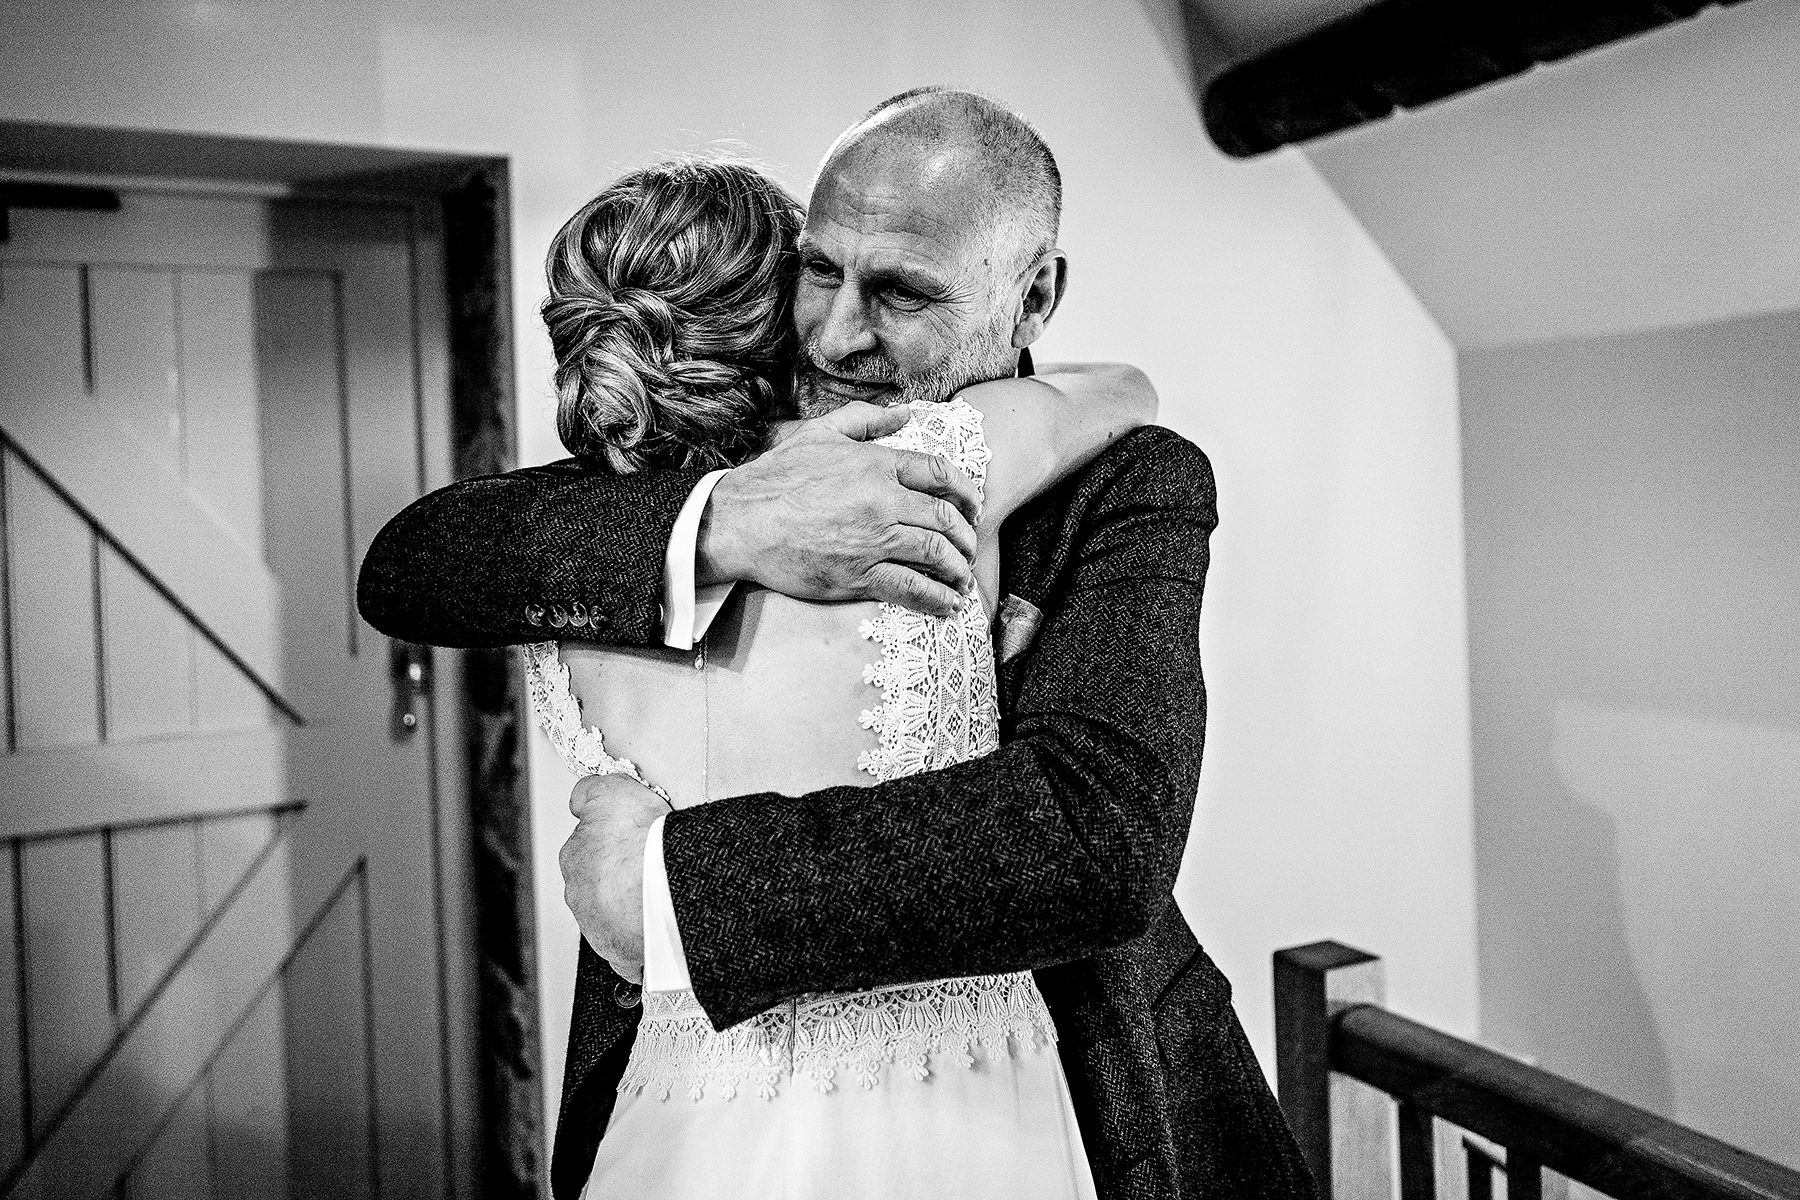 The dad hugging the bride on her wedding day